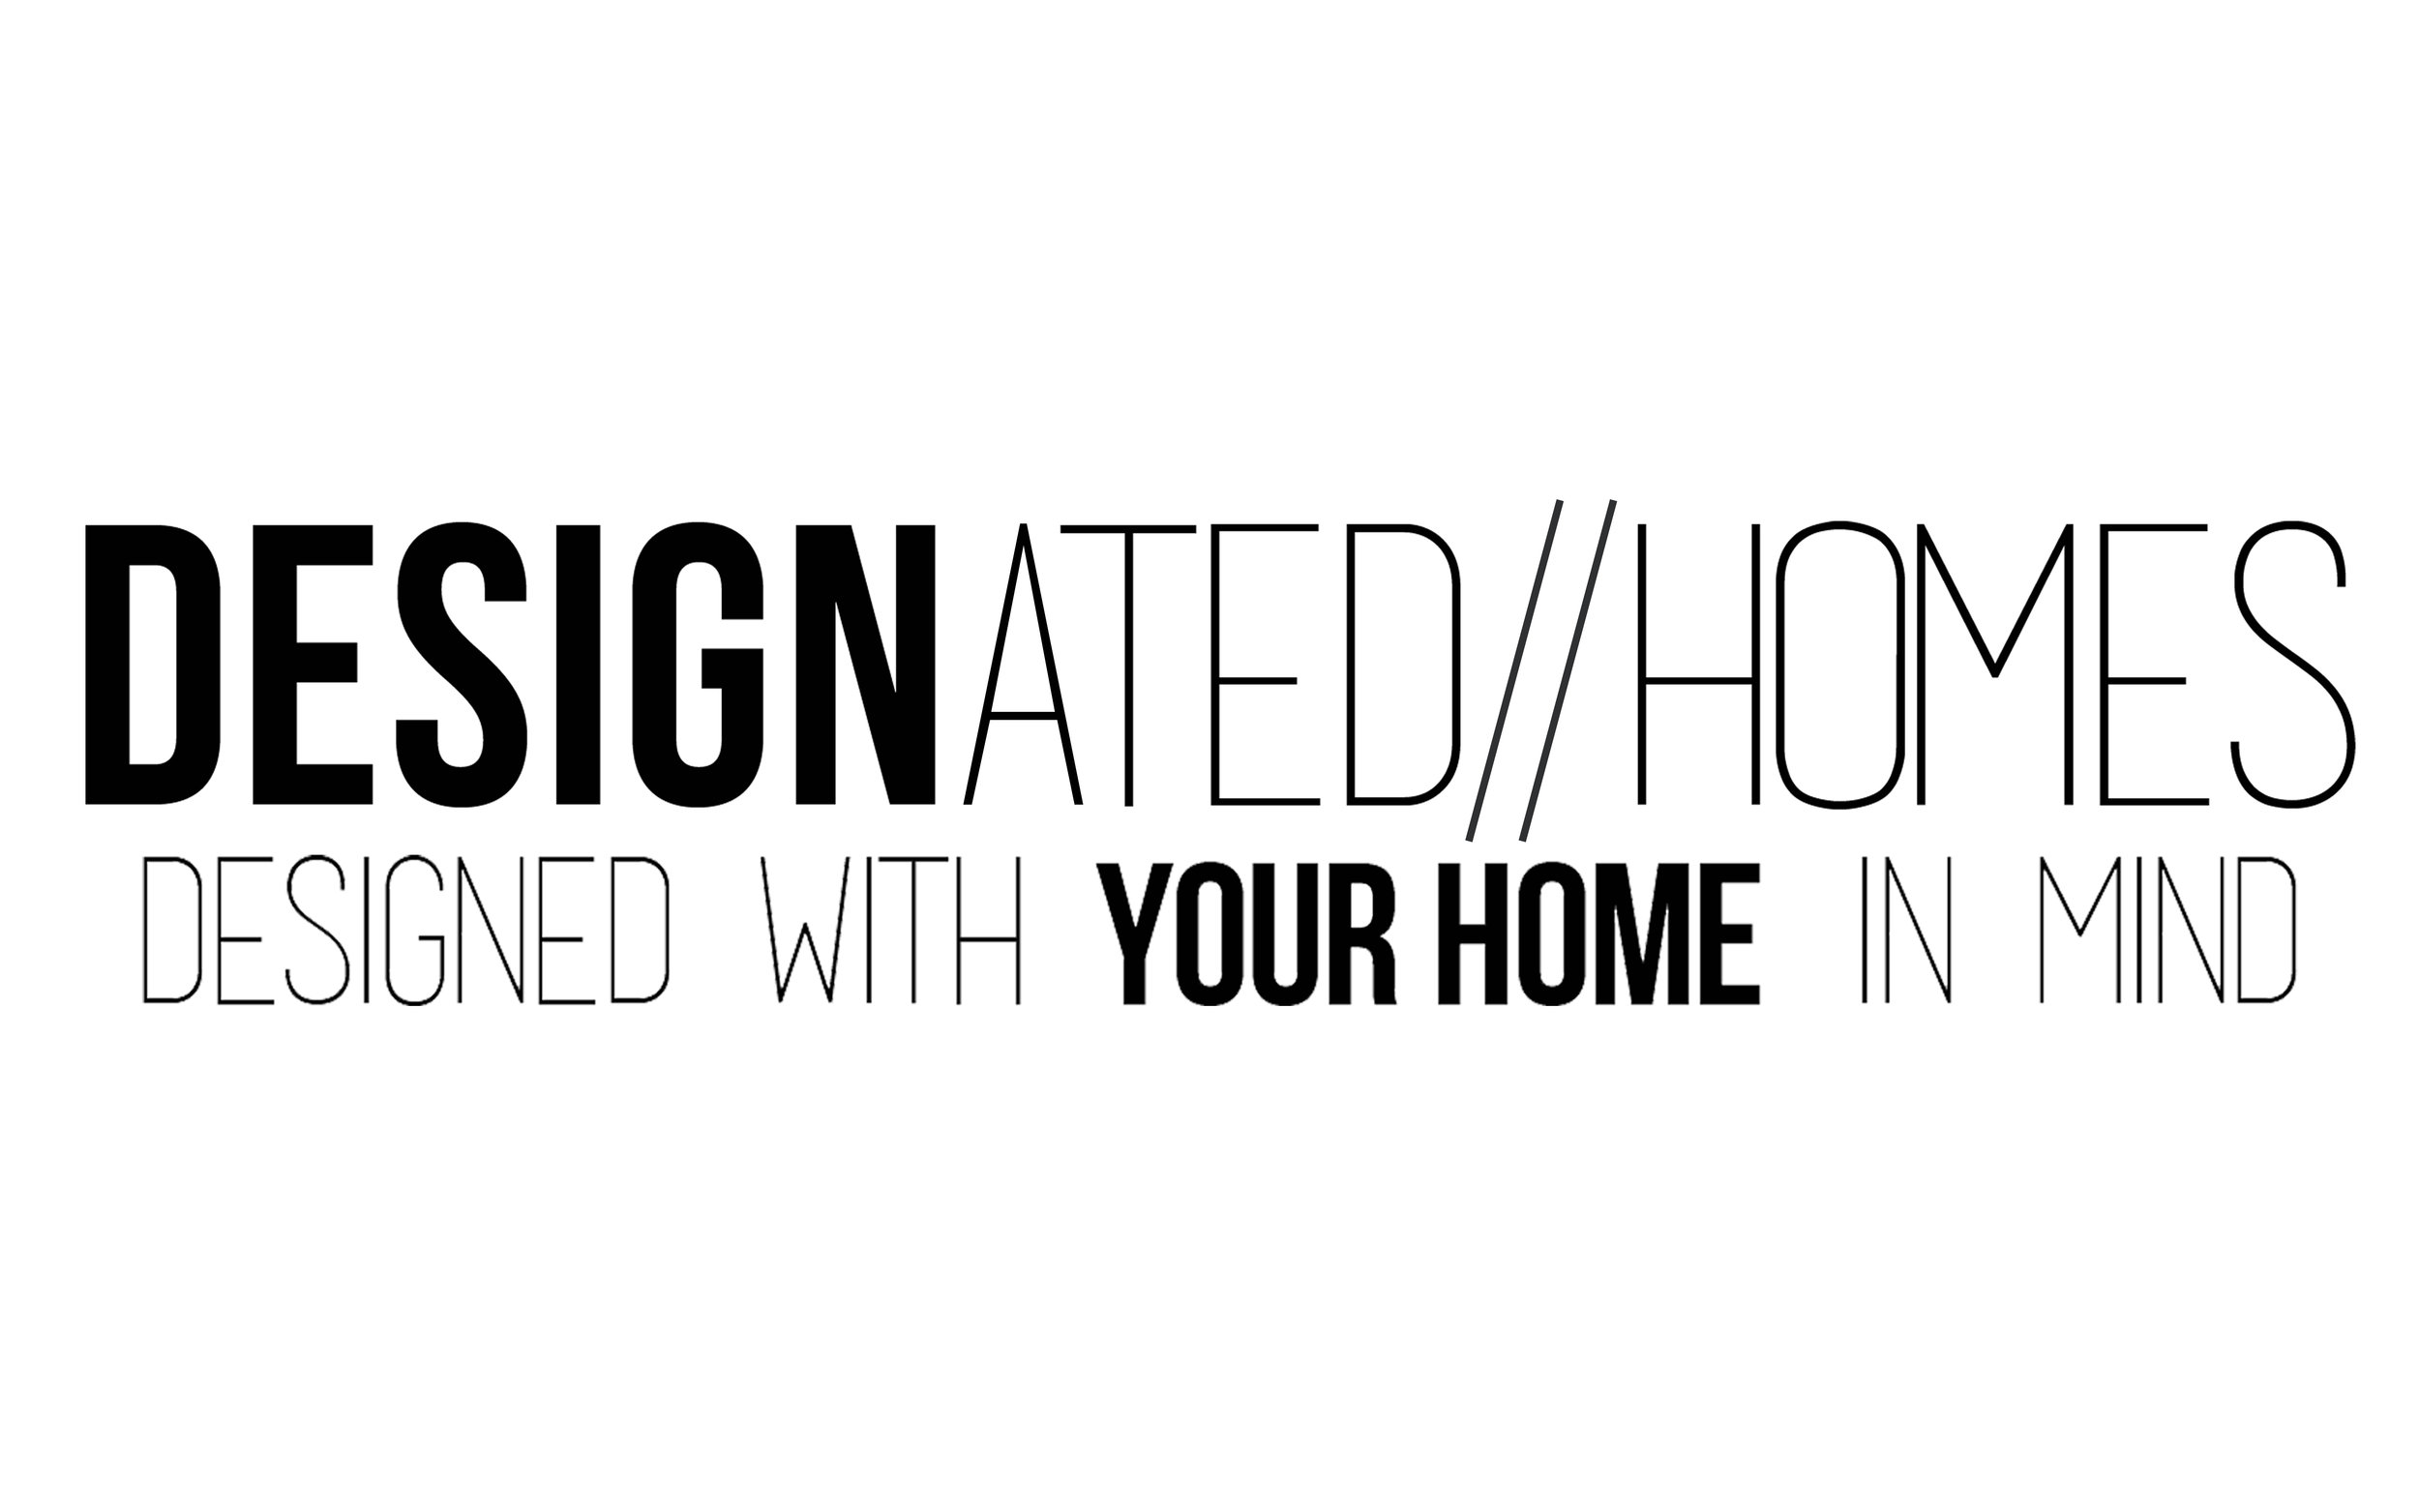 designated homes logosloganbgtwhite.jpg